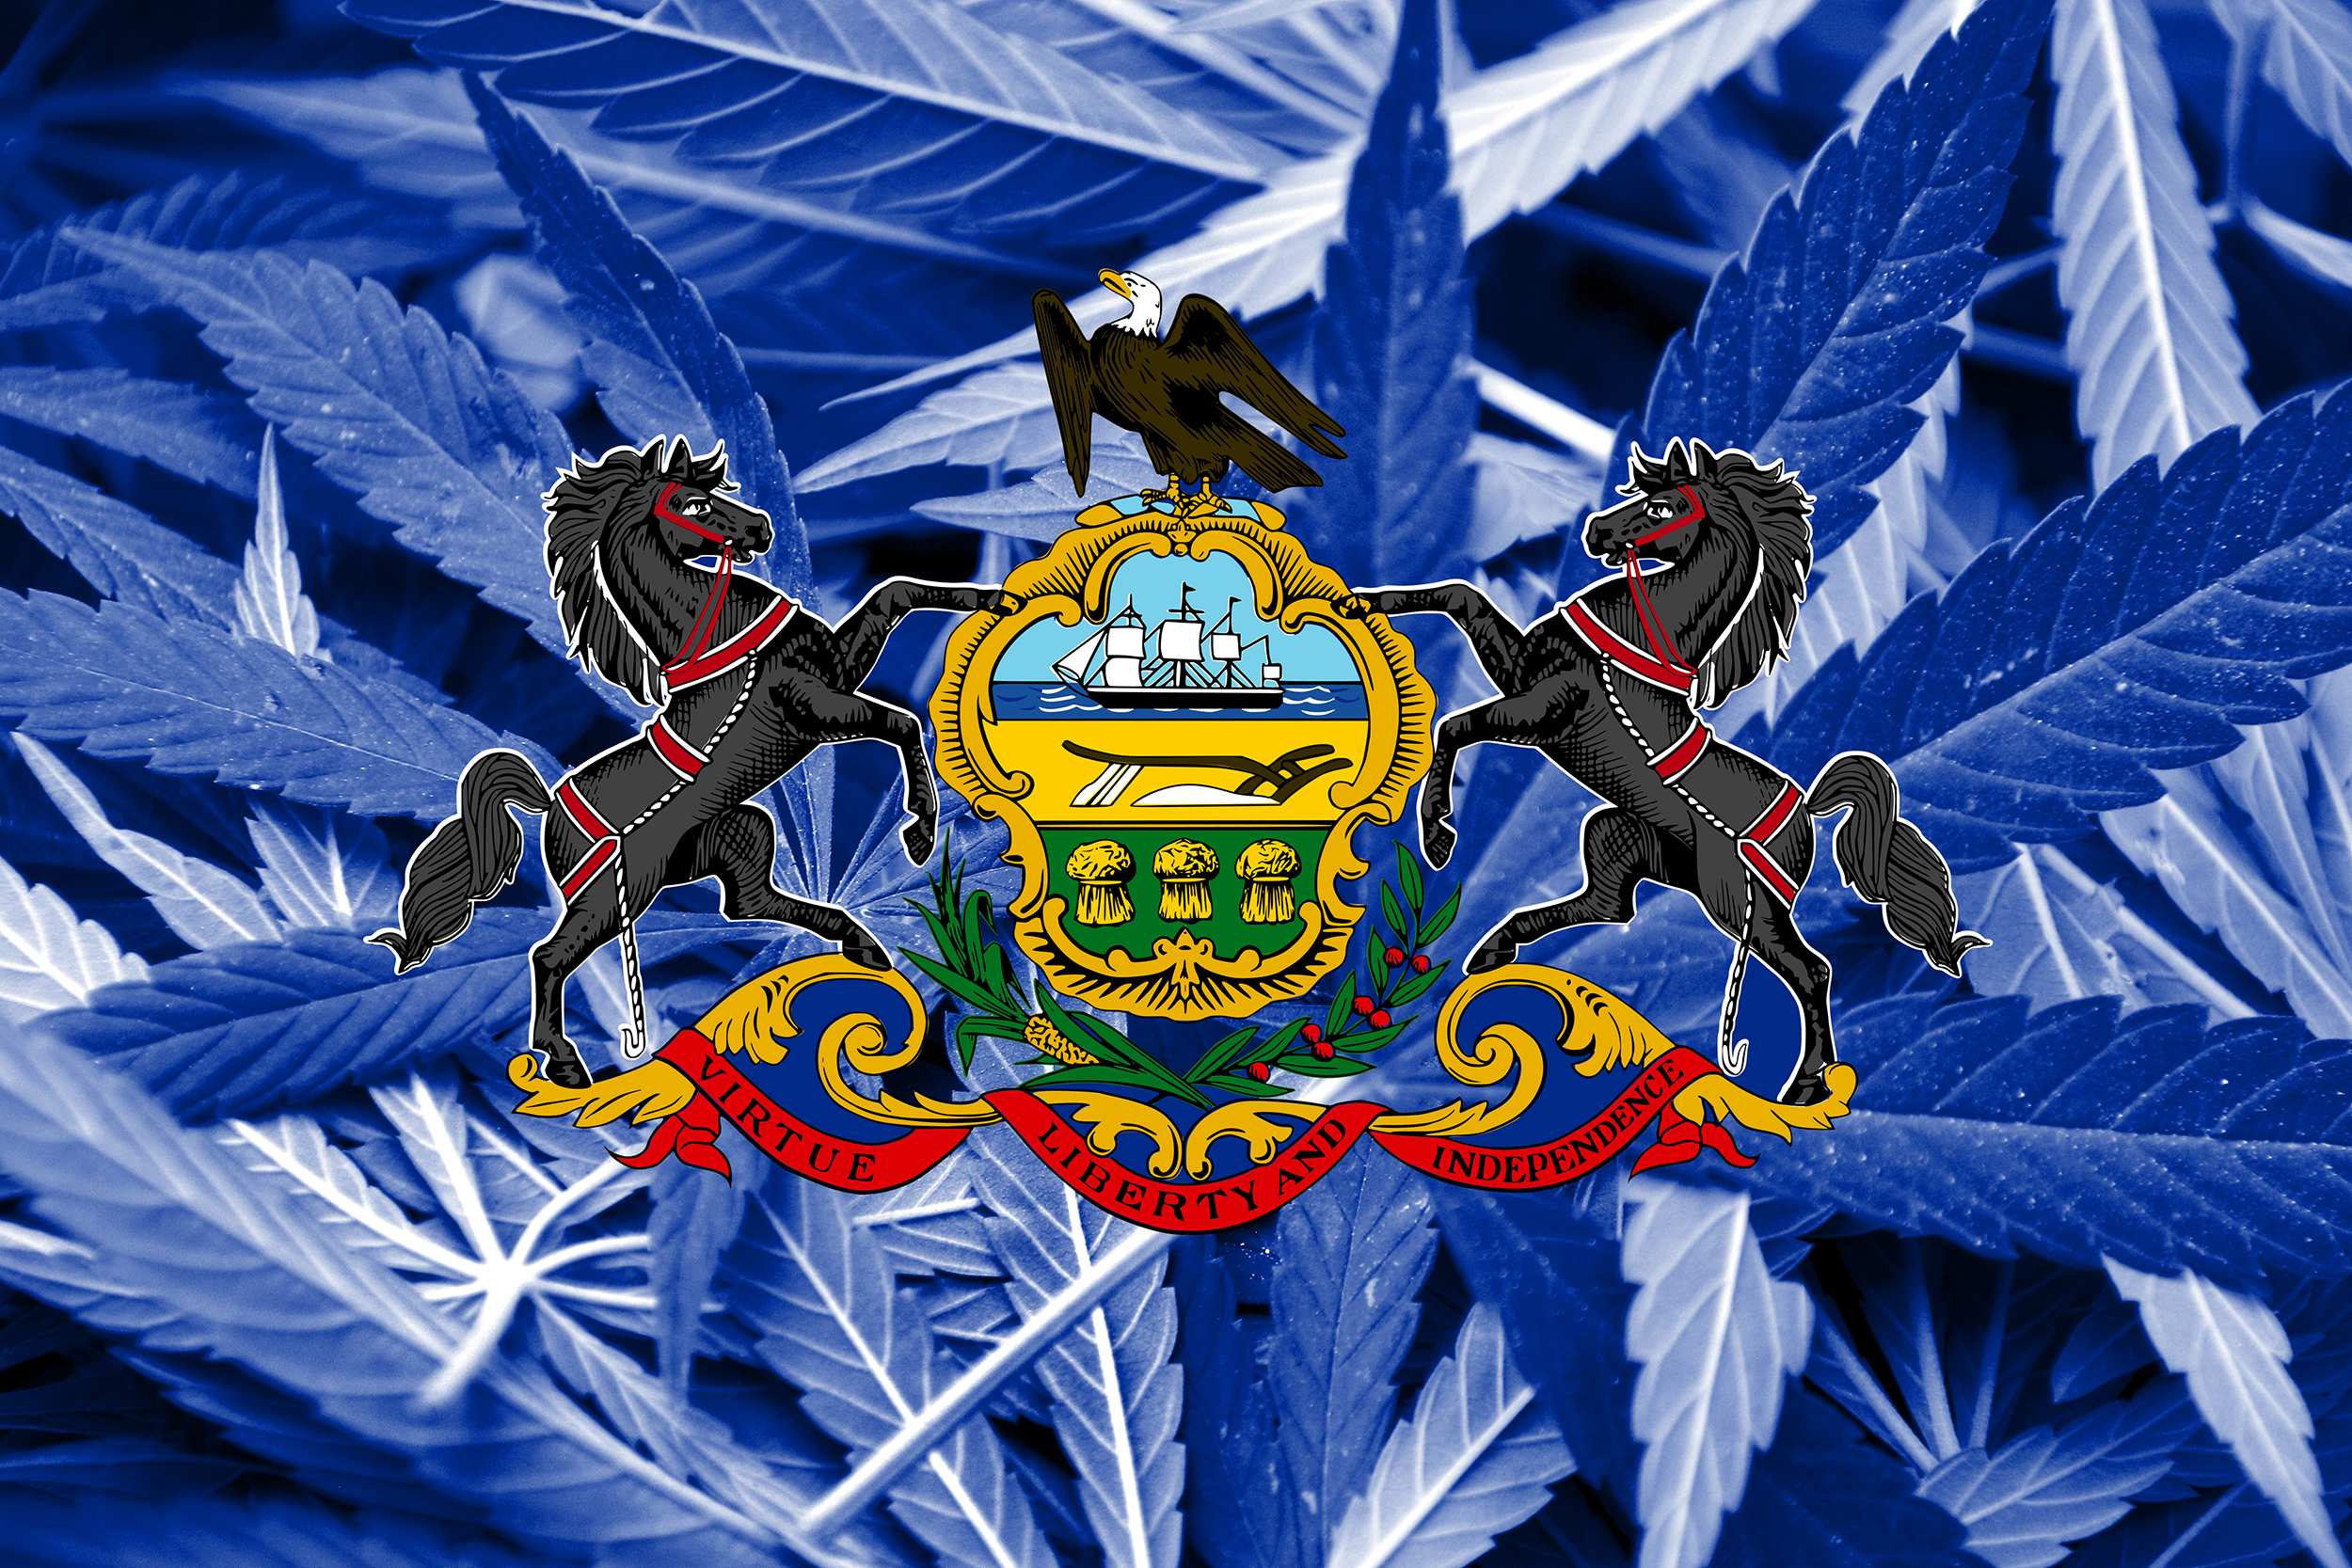 Pennsylvania Almost Doubles Number of Medical Marijuana Dispensaries